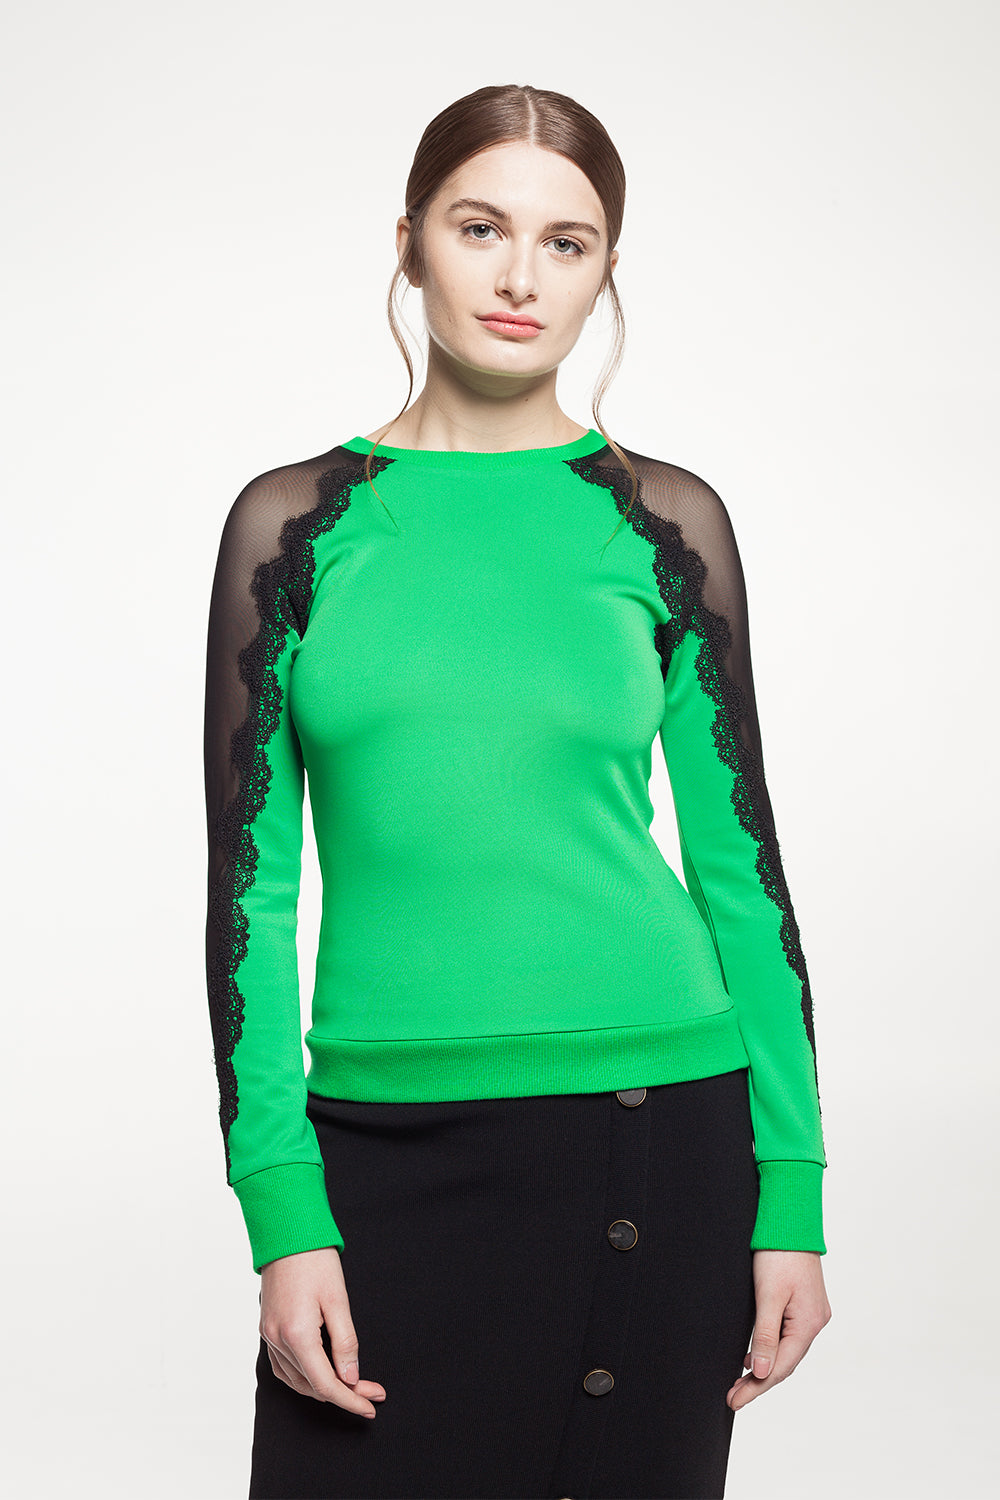 Green Lace Top - 40% Off